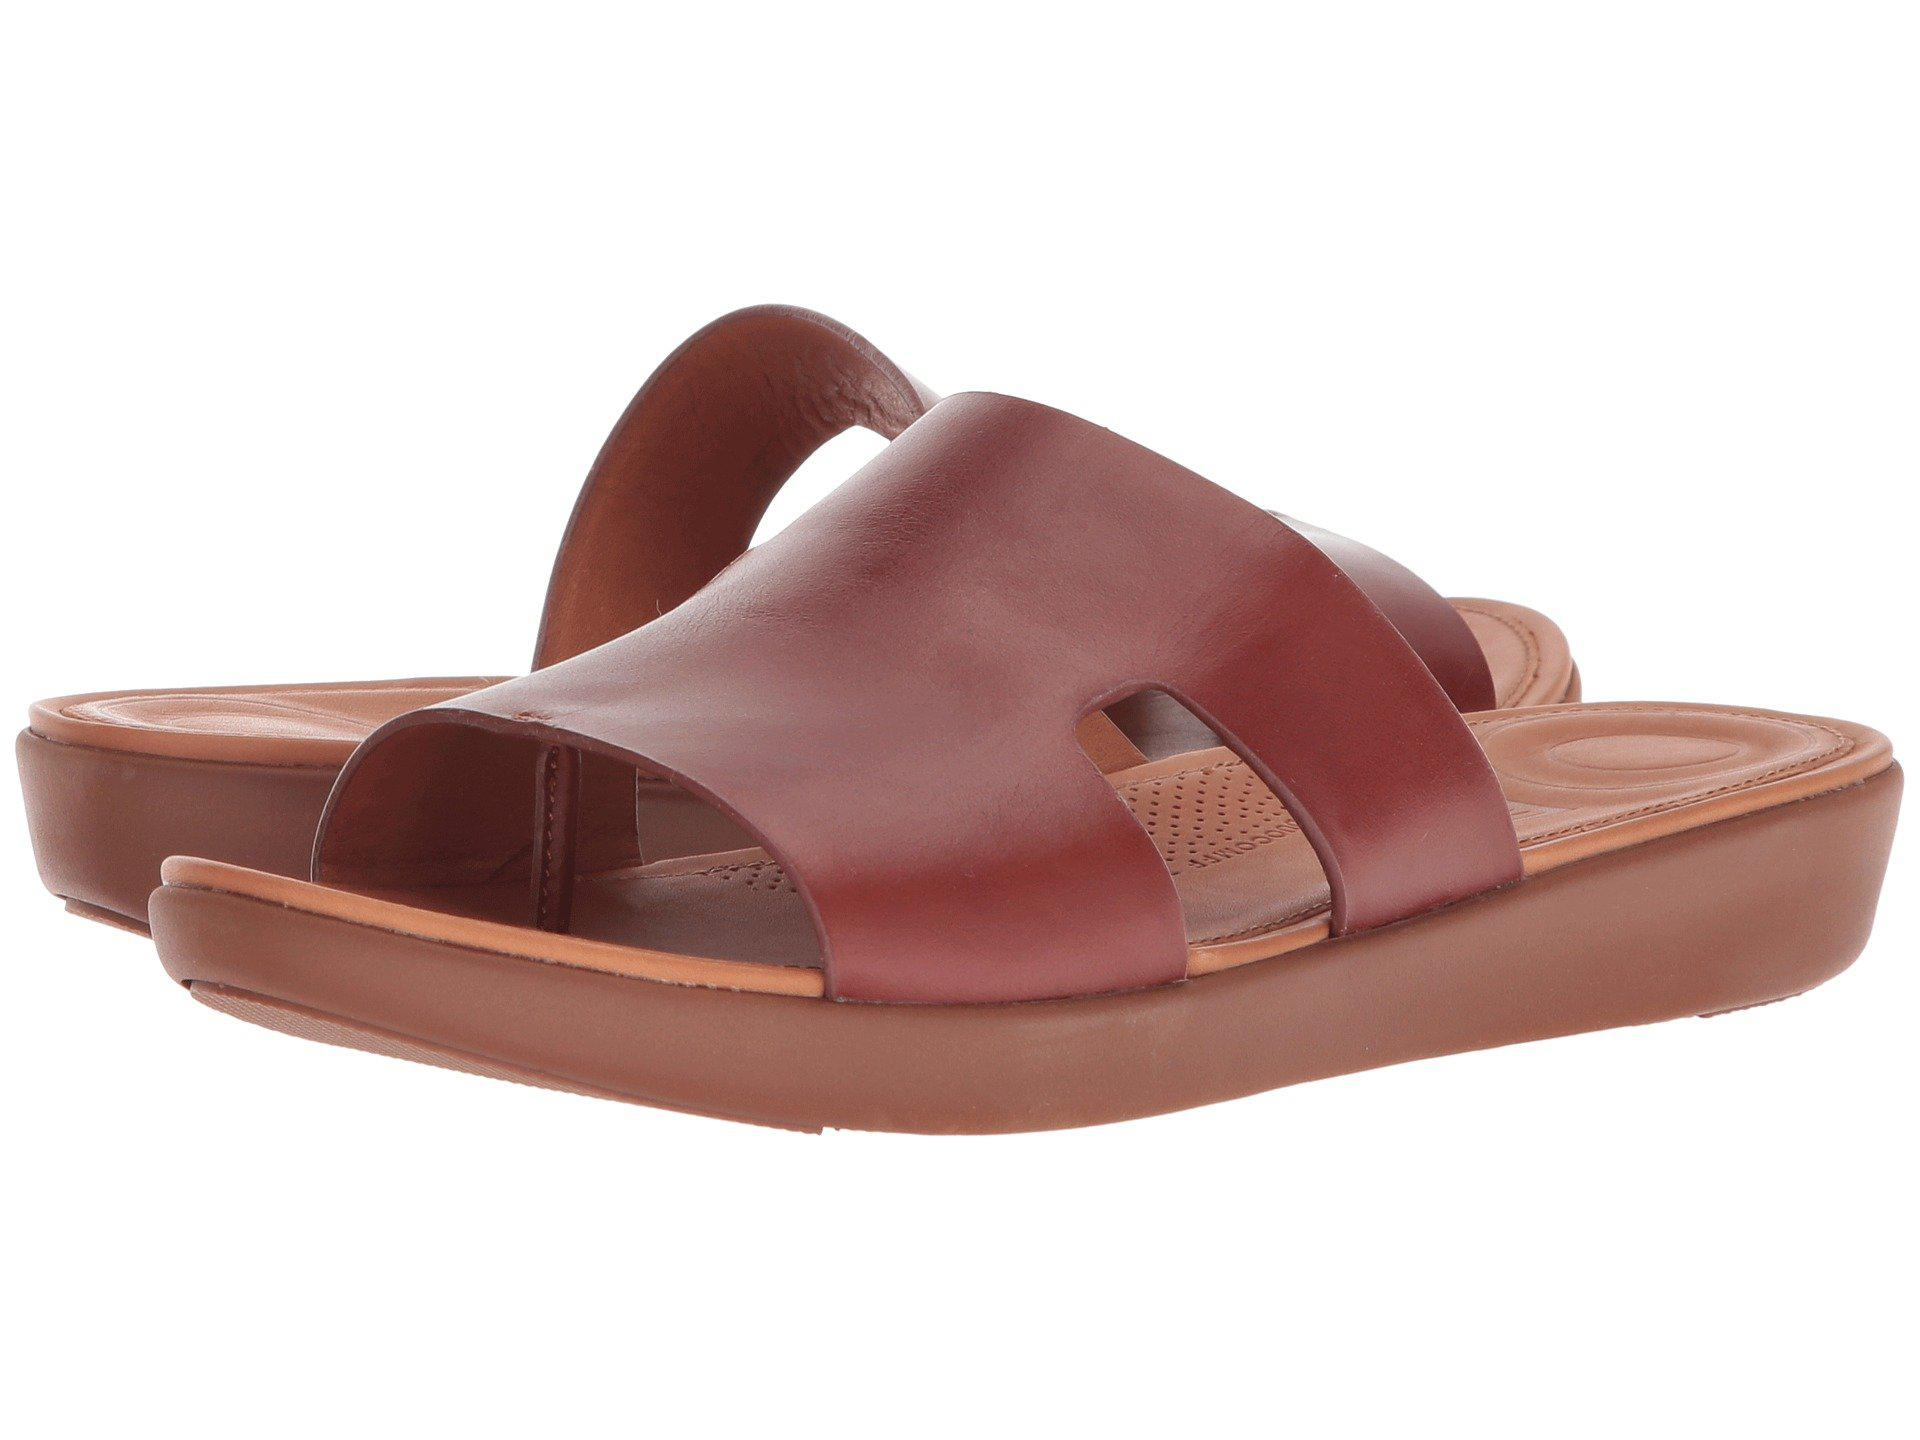 ab85635c1 Lyst - Fitflop H-bar Slide Sandals for Men